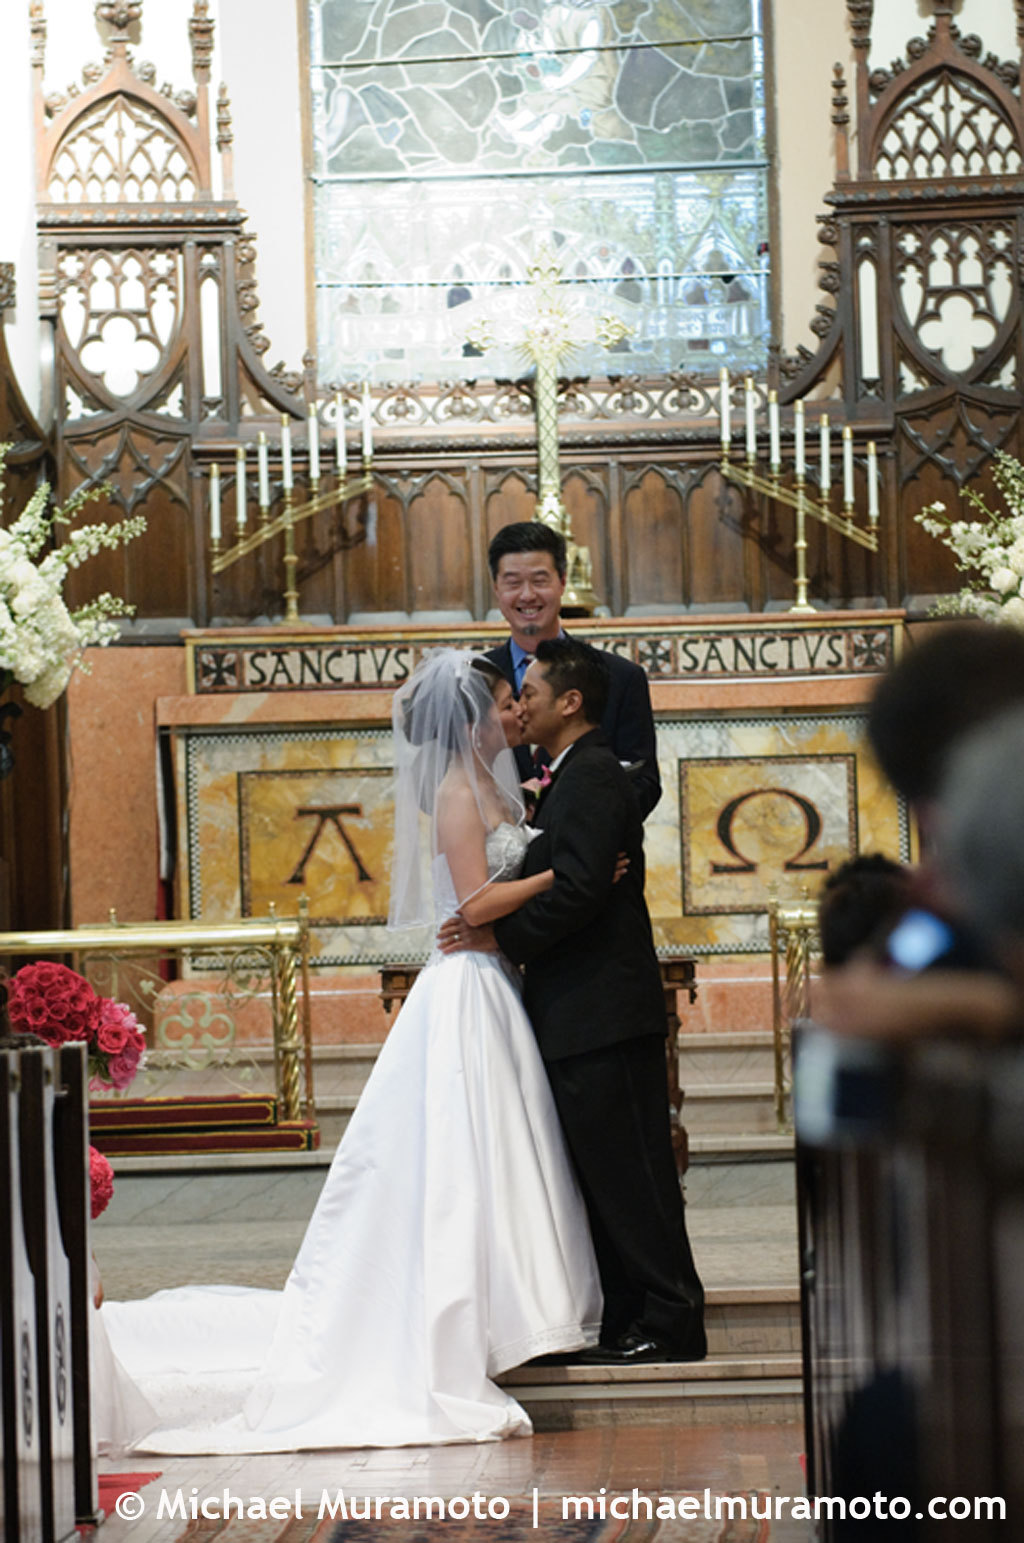 Bride, Groom, Kiss, Church, San francisco, First kiss, Michael muramoto photography, Trinity episcopal